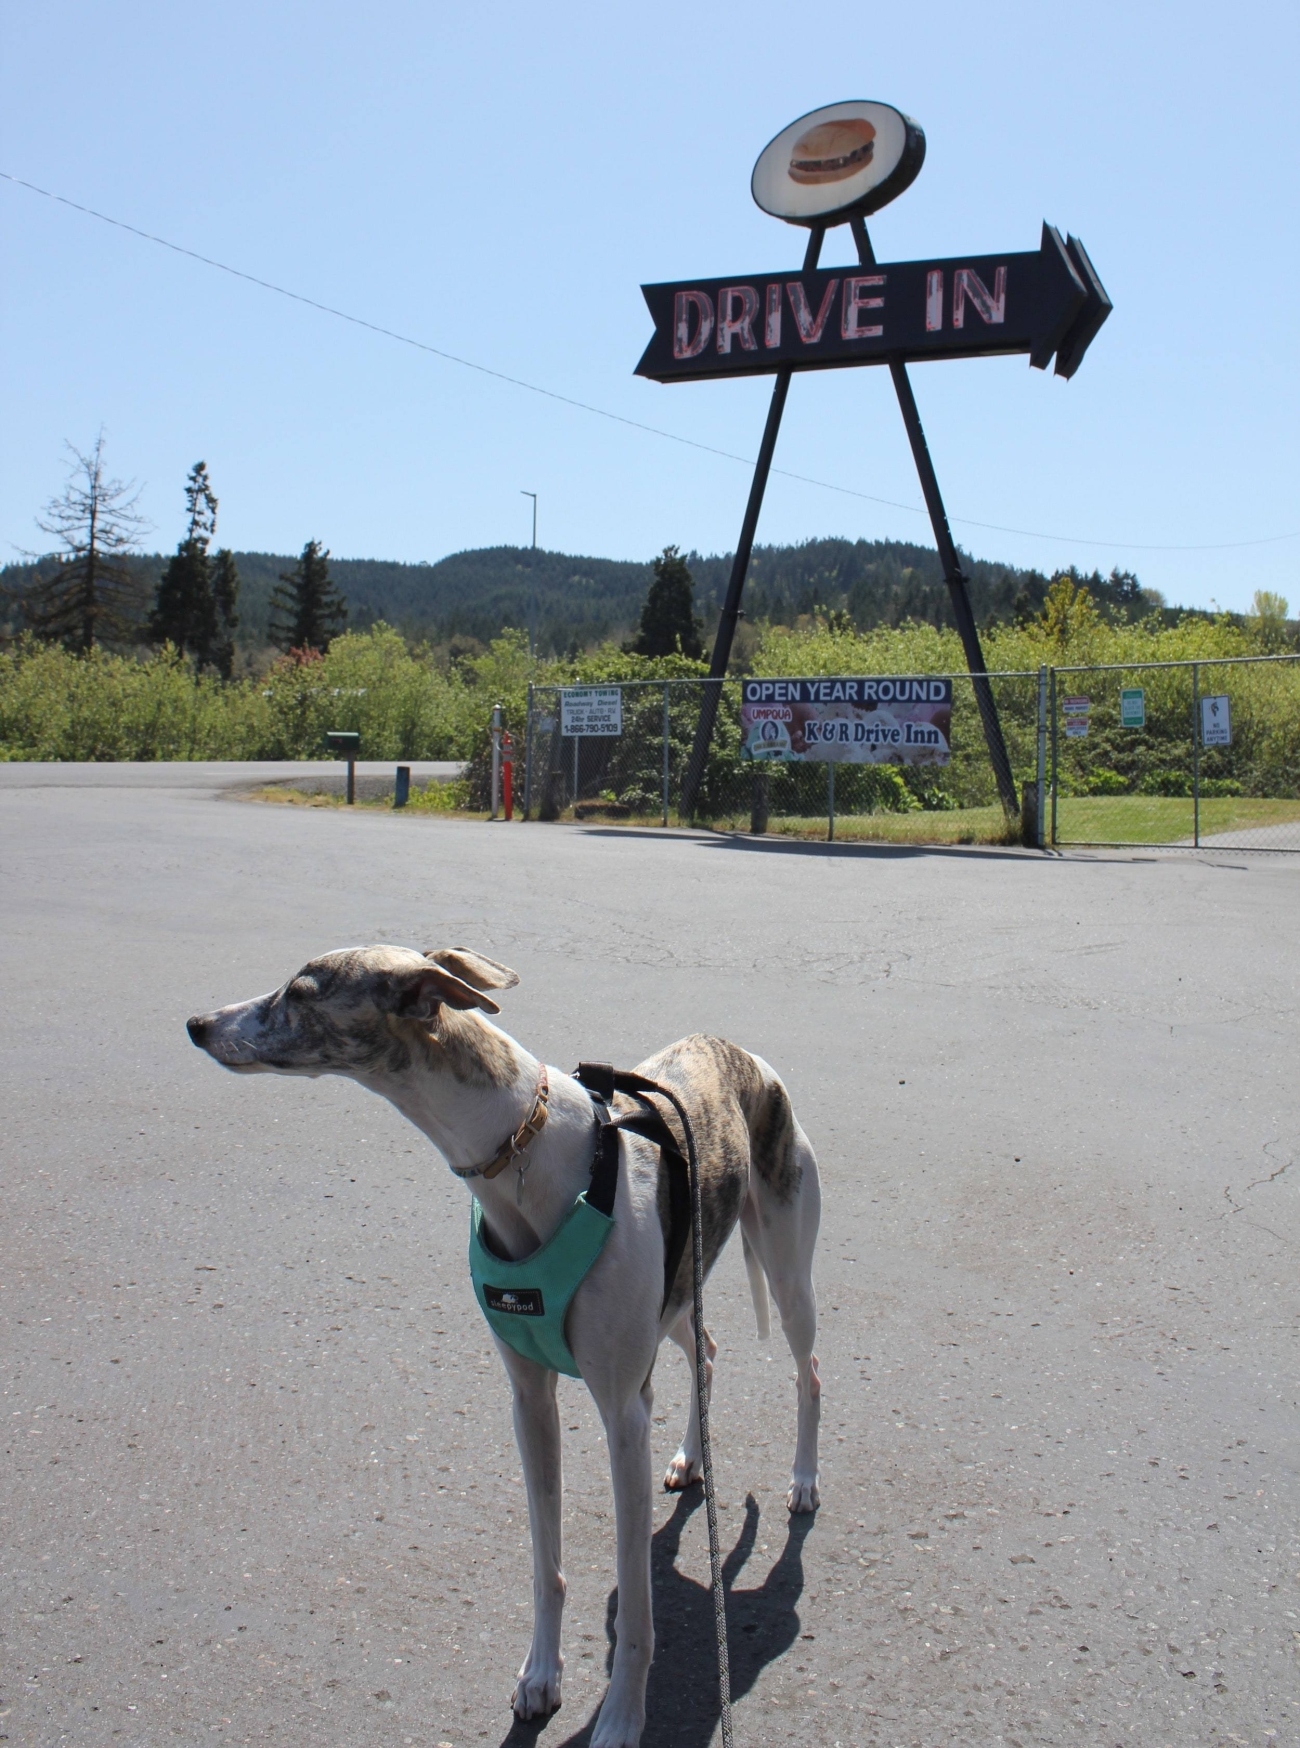 whippet-dog-kr-drive-in.jpg